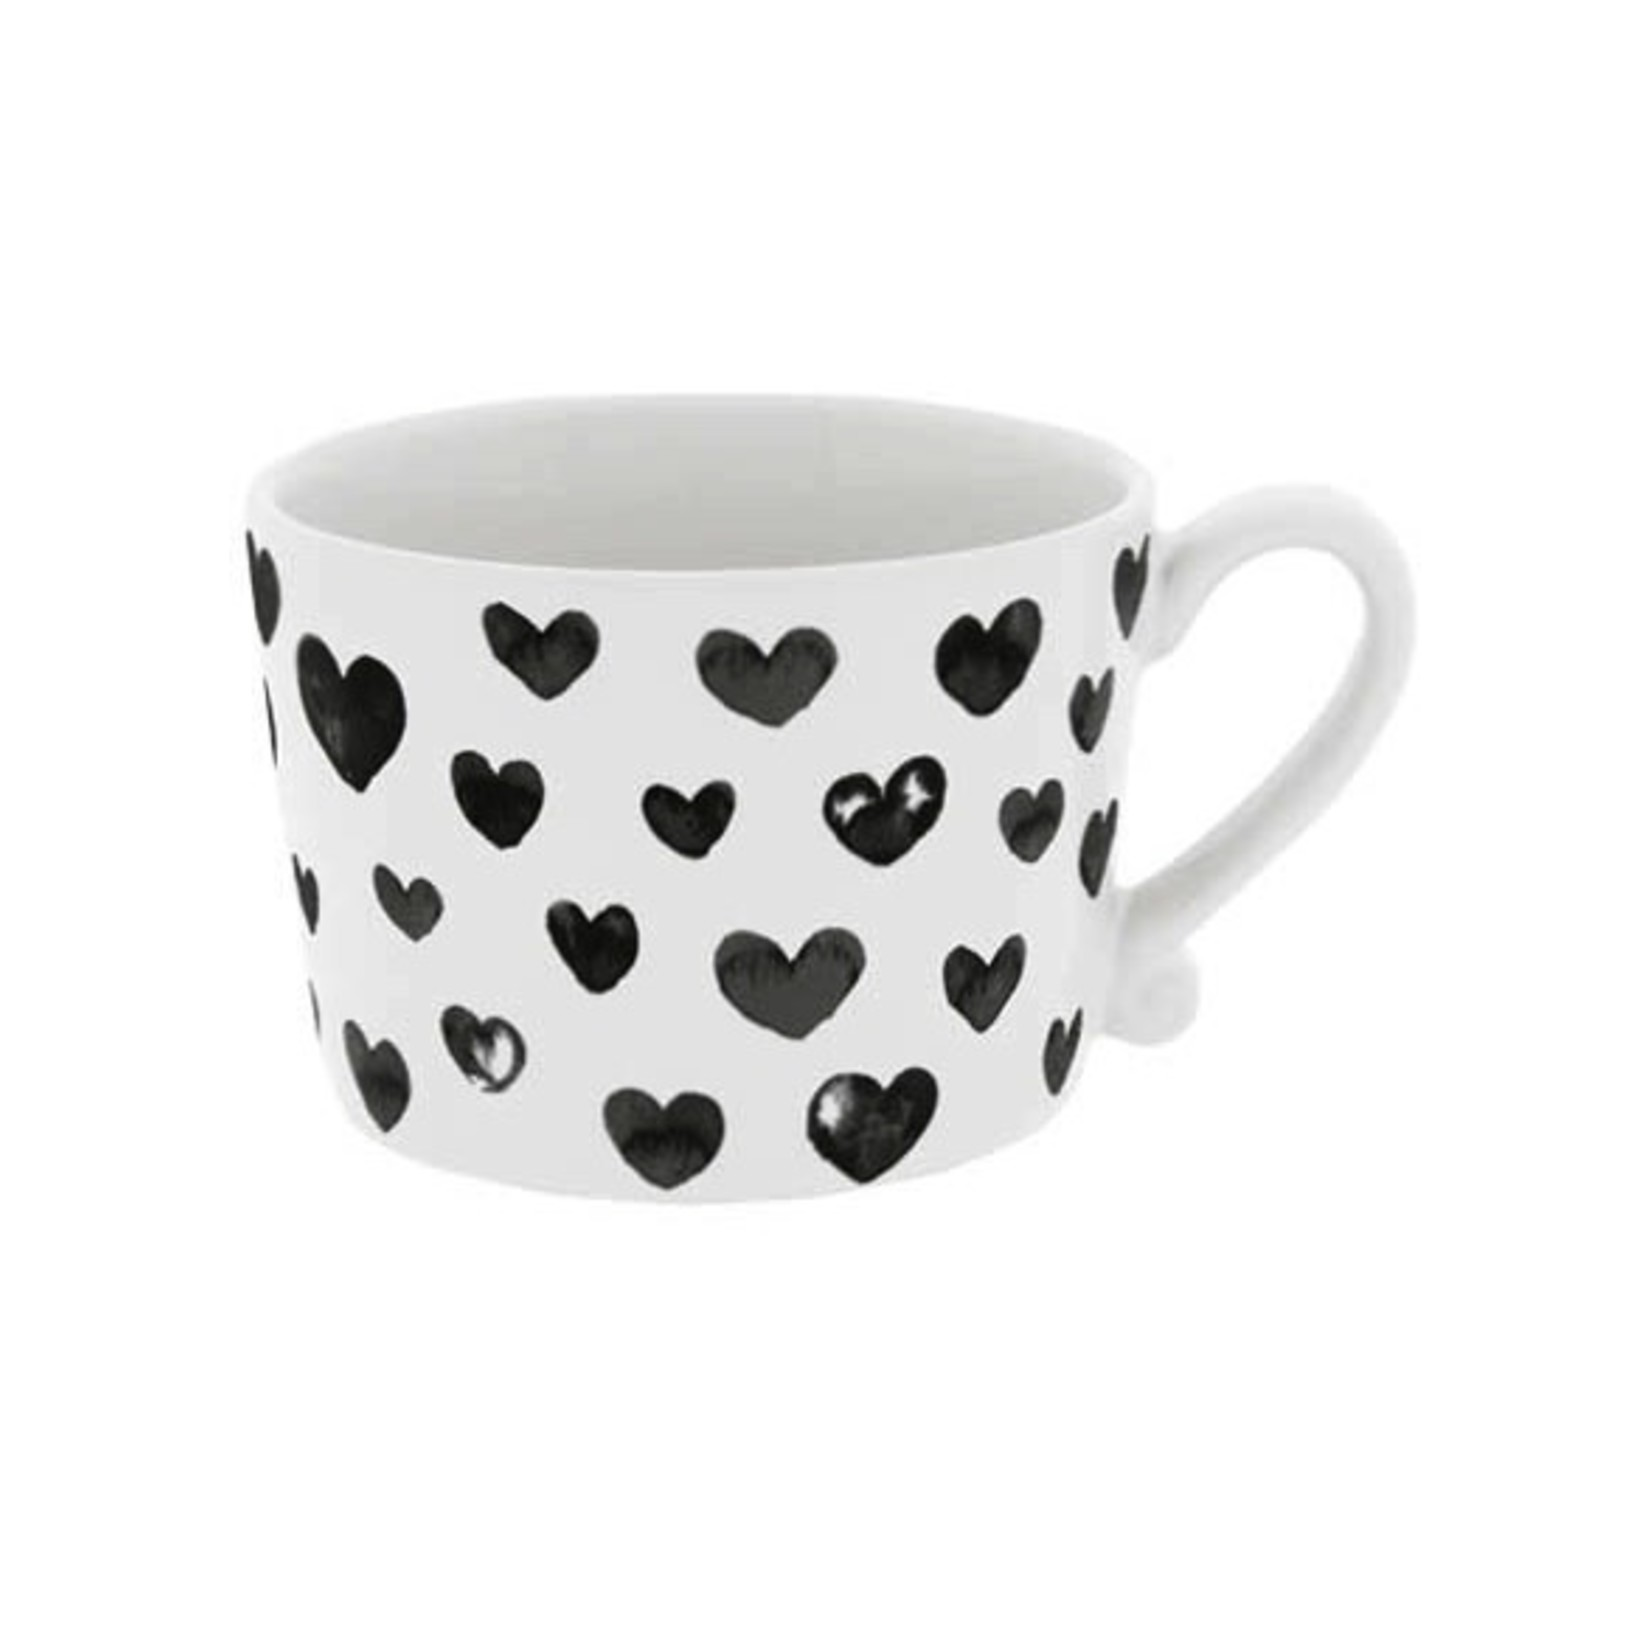 Bastion Collections Cup large White Hearts in Black